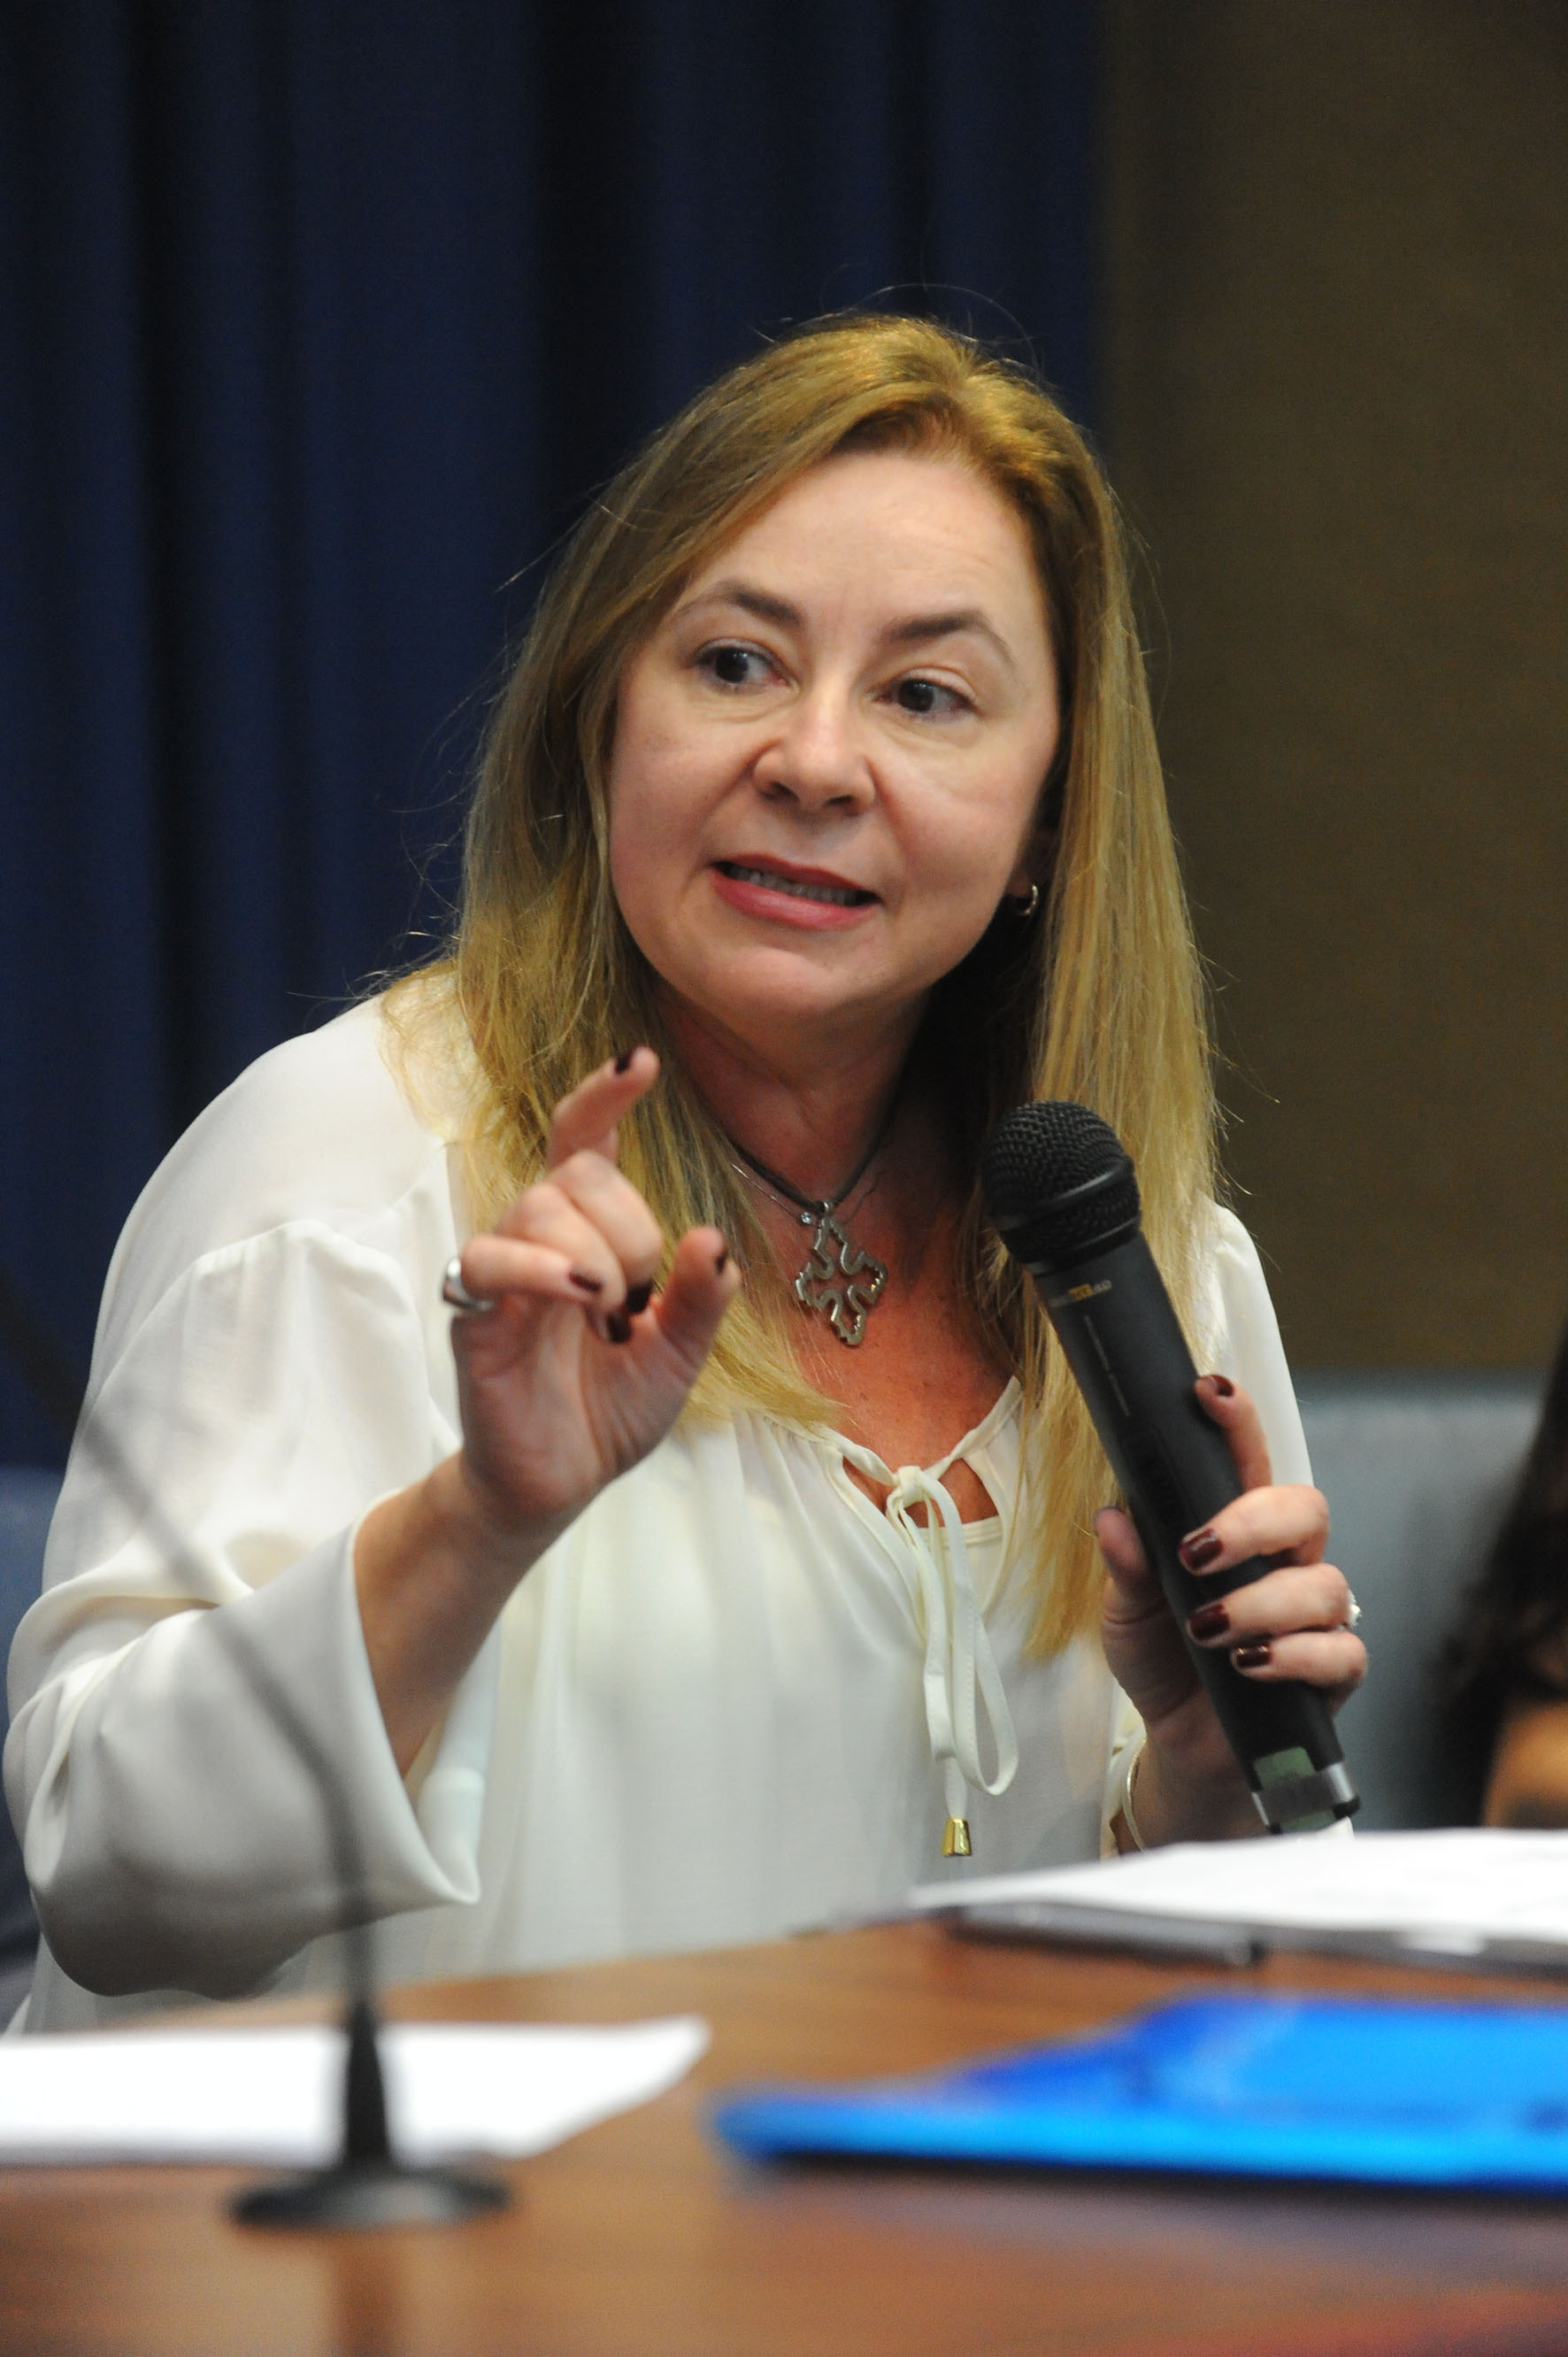 Ednéia Marques<a style='float:right' href='https://www3.al.sp.gov.br/repositorio/noticia/N-05-2018/fg222266.jpg' target=_blank><img src='/_img/material-file-download-white.png' width='14px' alt='Clique para baixar a imagem'></a>